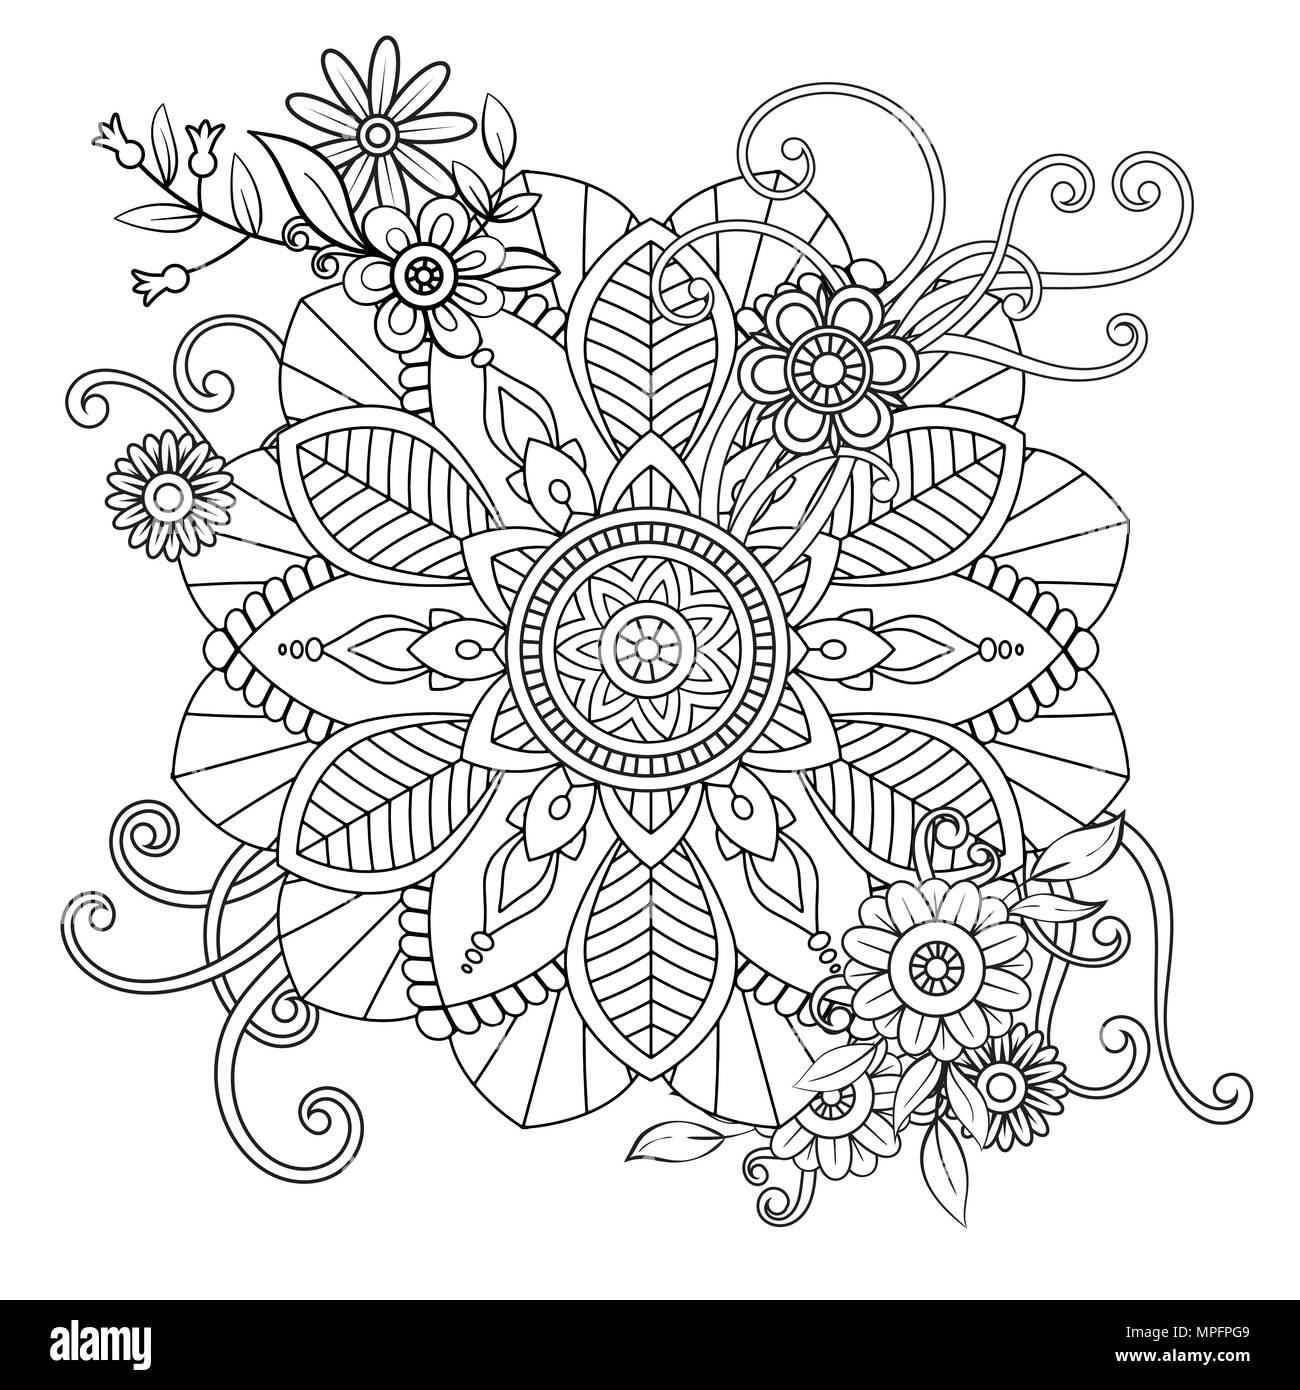 Floral Mandala Pattern In Black And White Adult Coloring